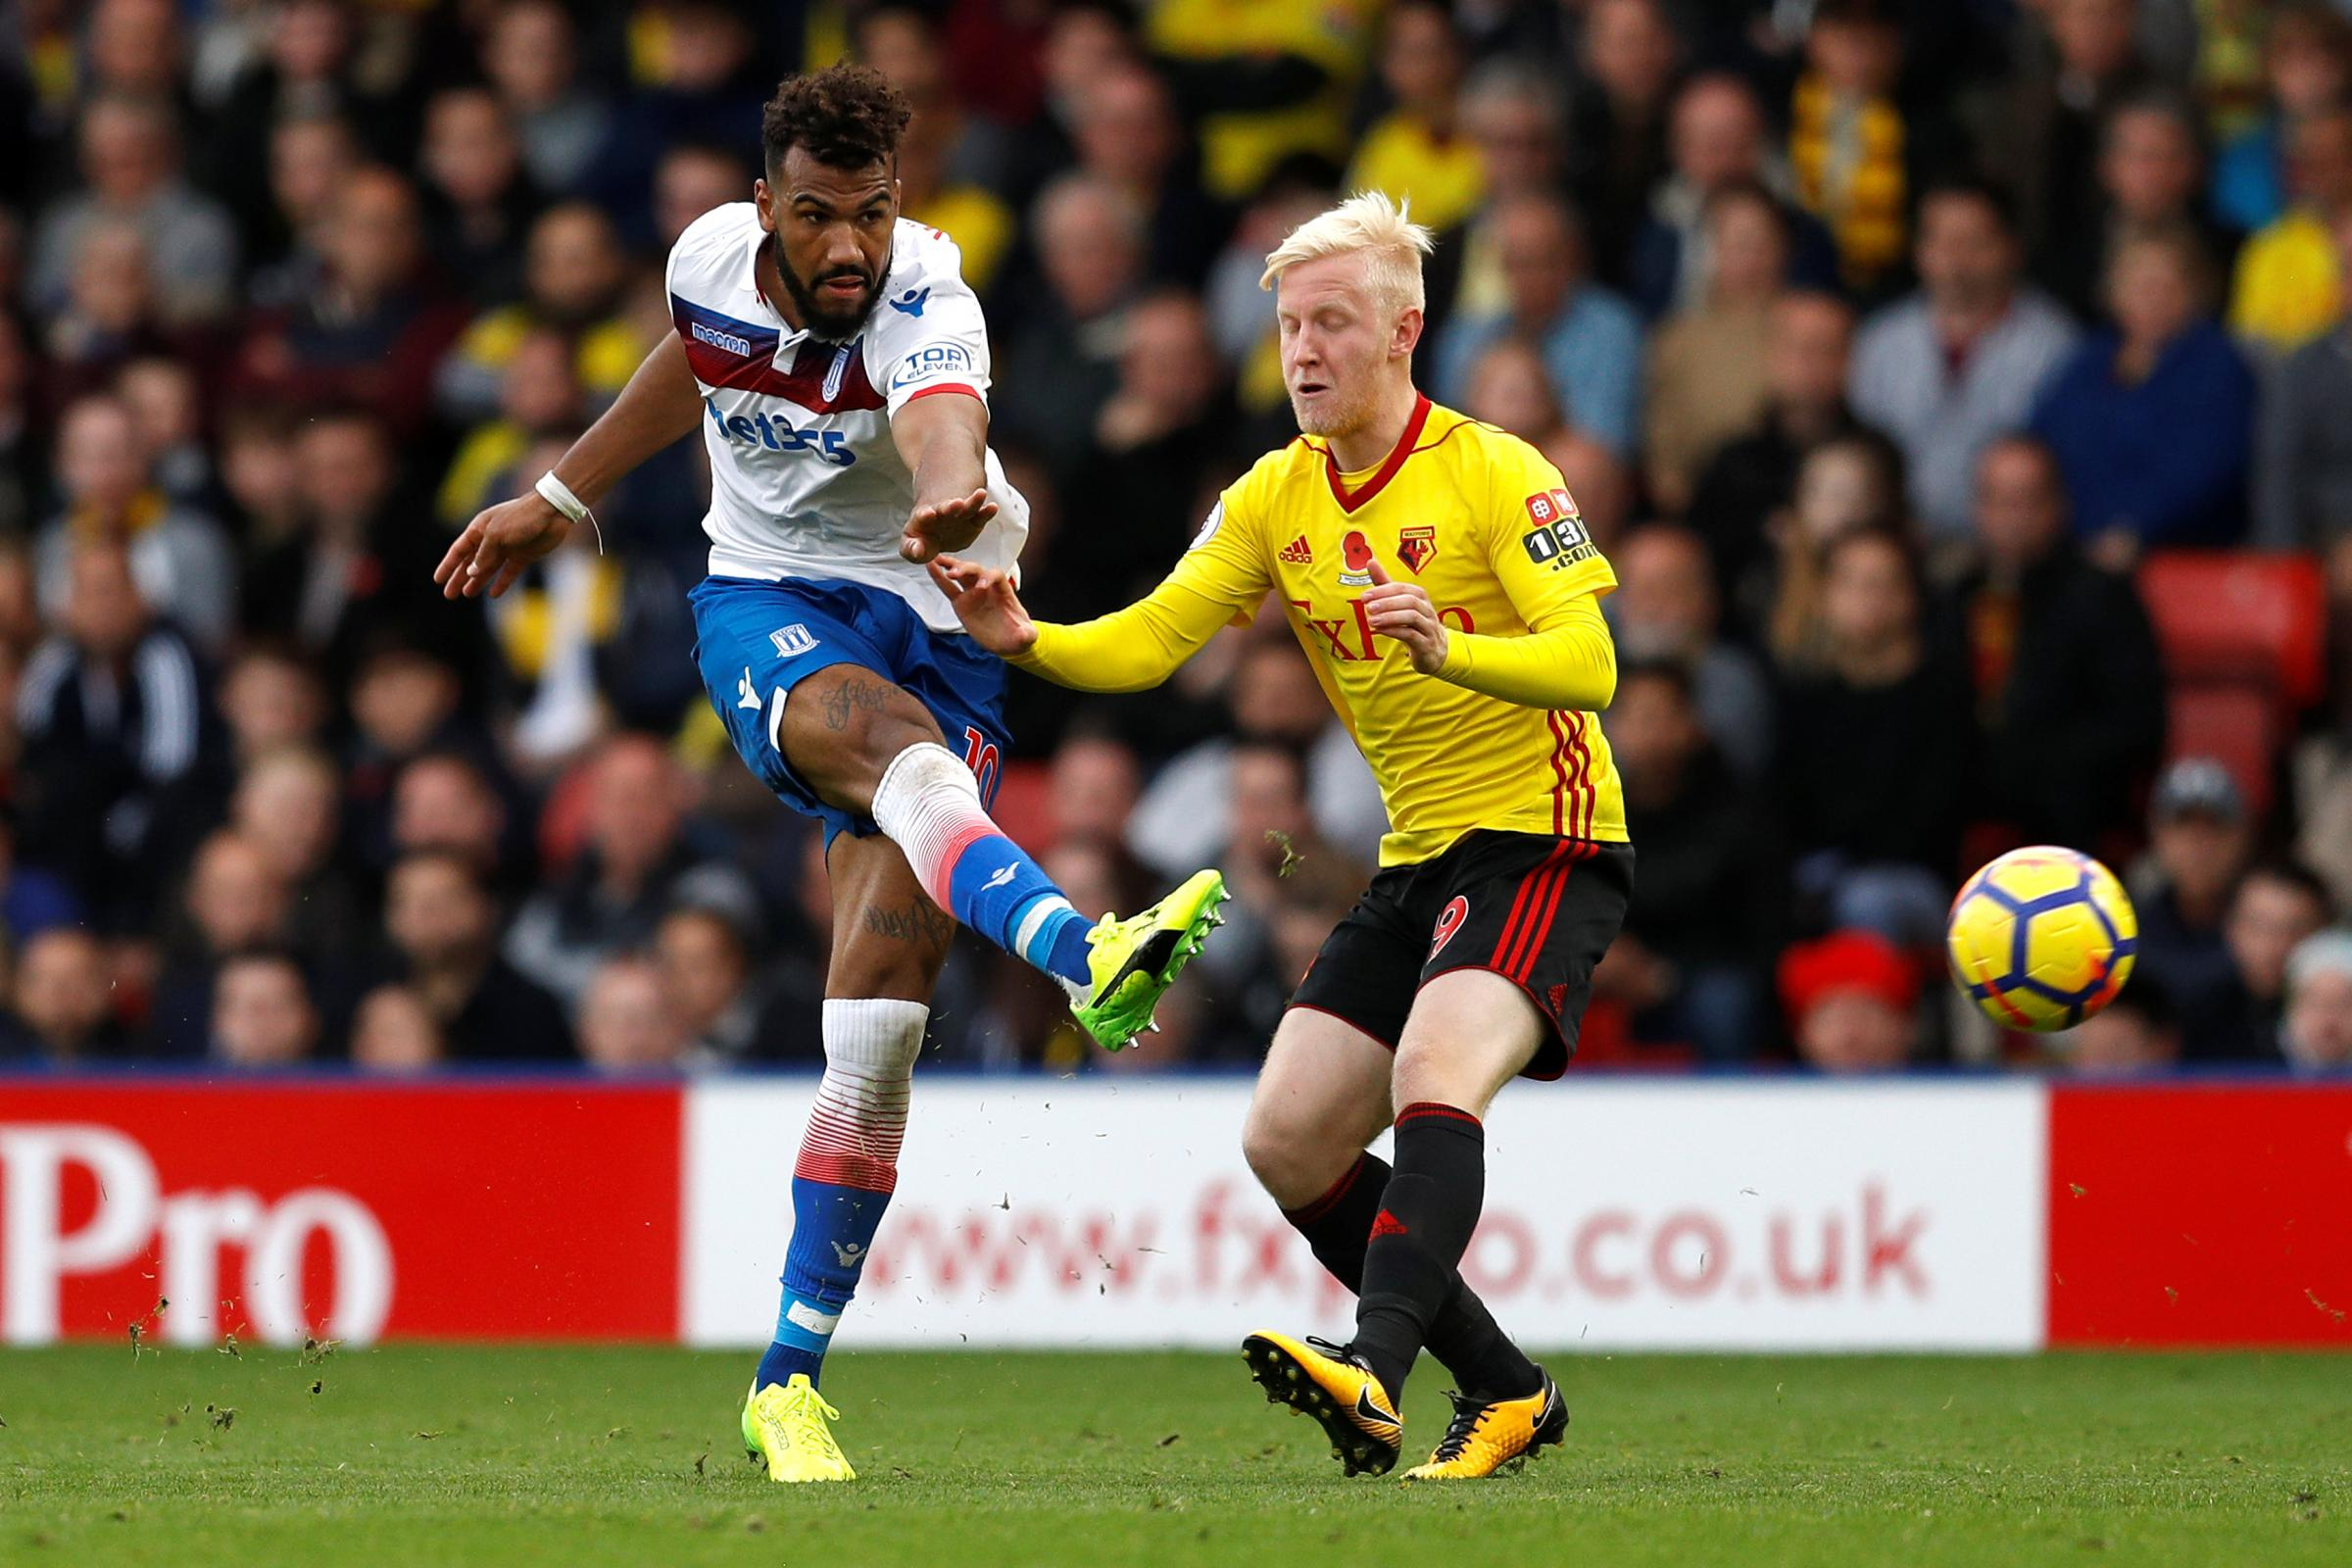 Will Hughes made his debut in the 1-0 defeat to Stoke. Picture: Action Images